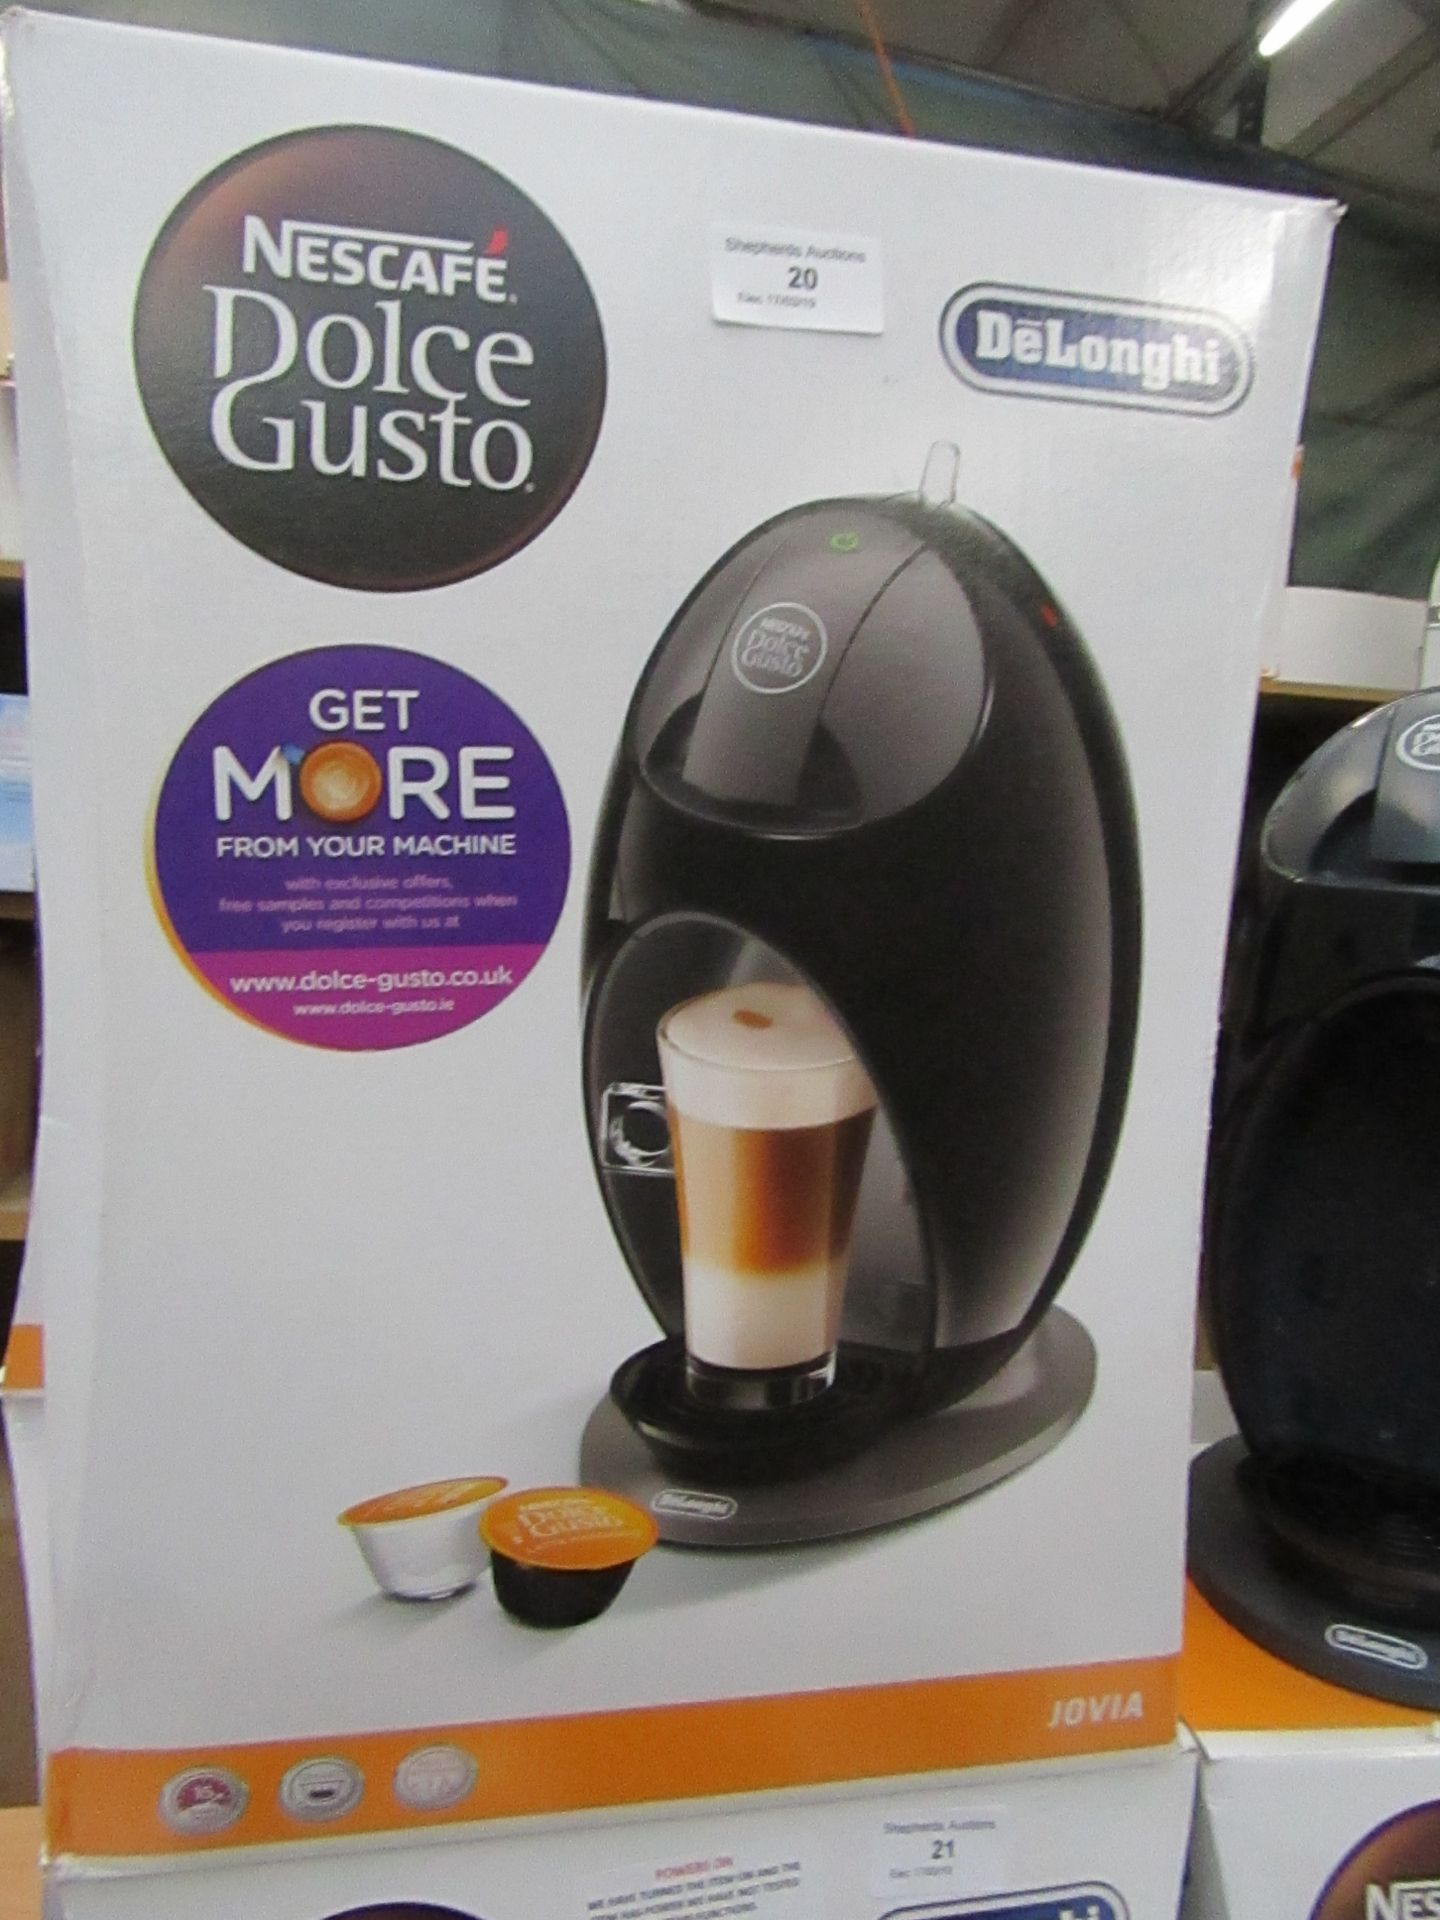 Lot 20 - Delonghi espresso machine, powers on and boxed